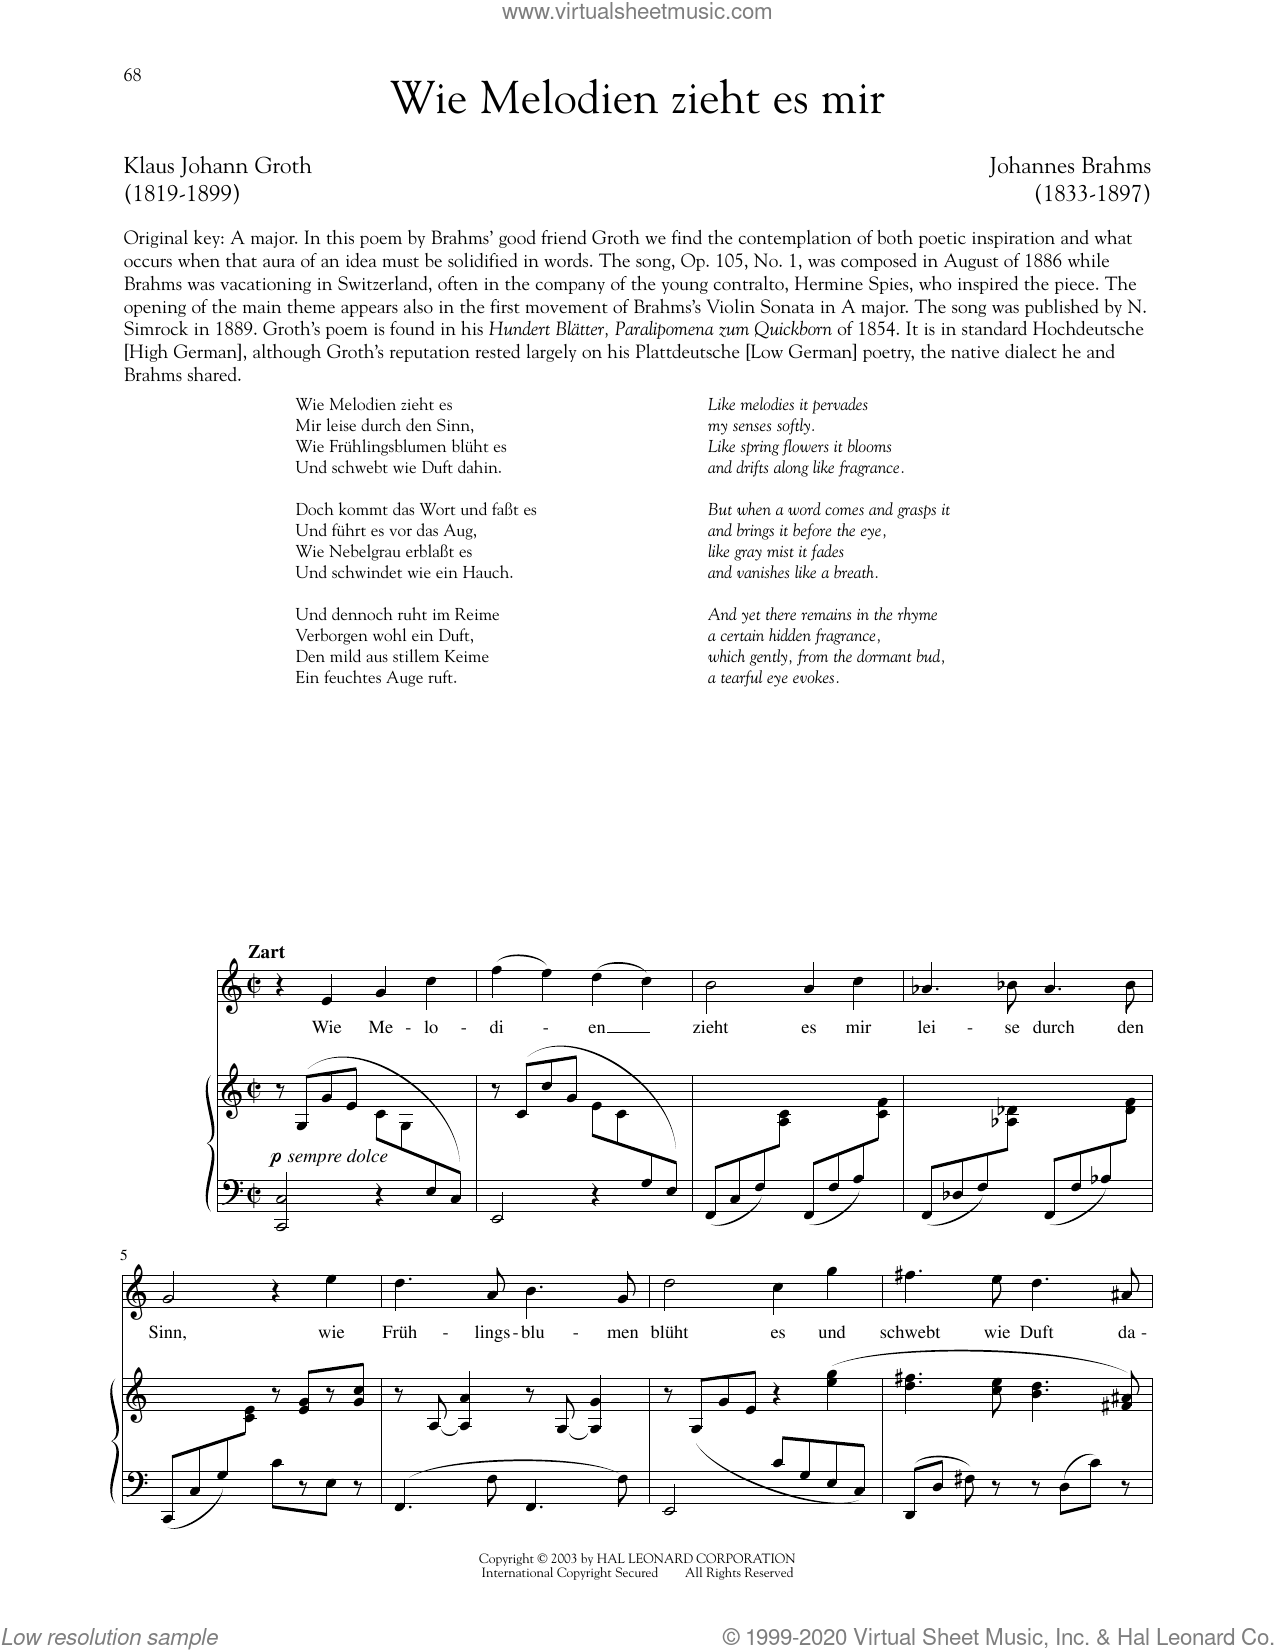 Wie Melodien Zieht Es Mir, Op. 105, No. 1 sheet music for voice and piano by Johannes Brahms and Richard Walters, classical score, intermediate skill level